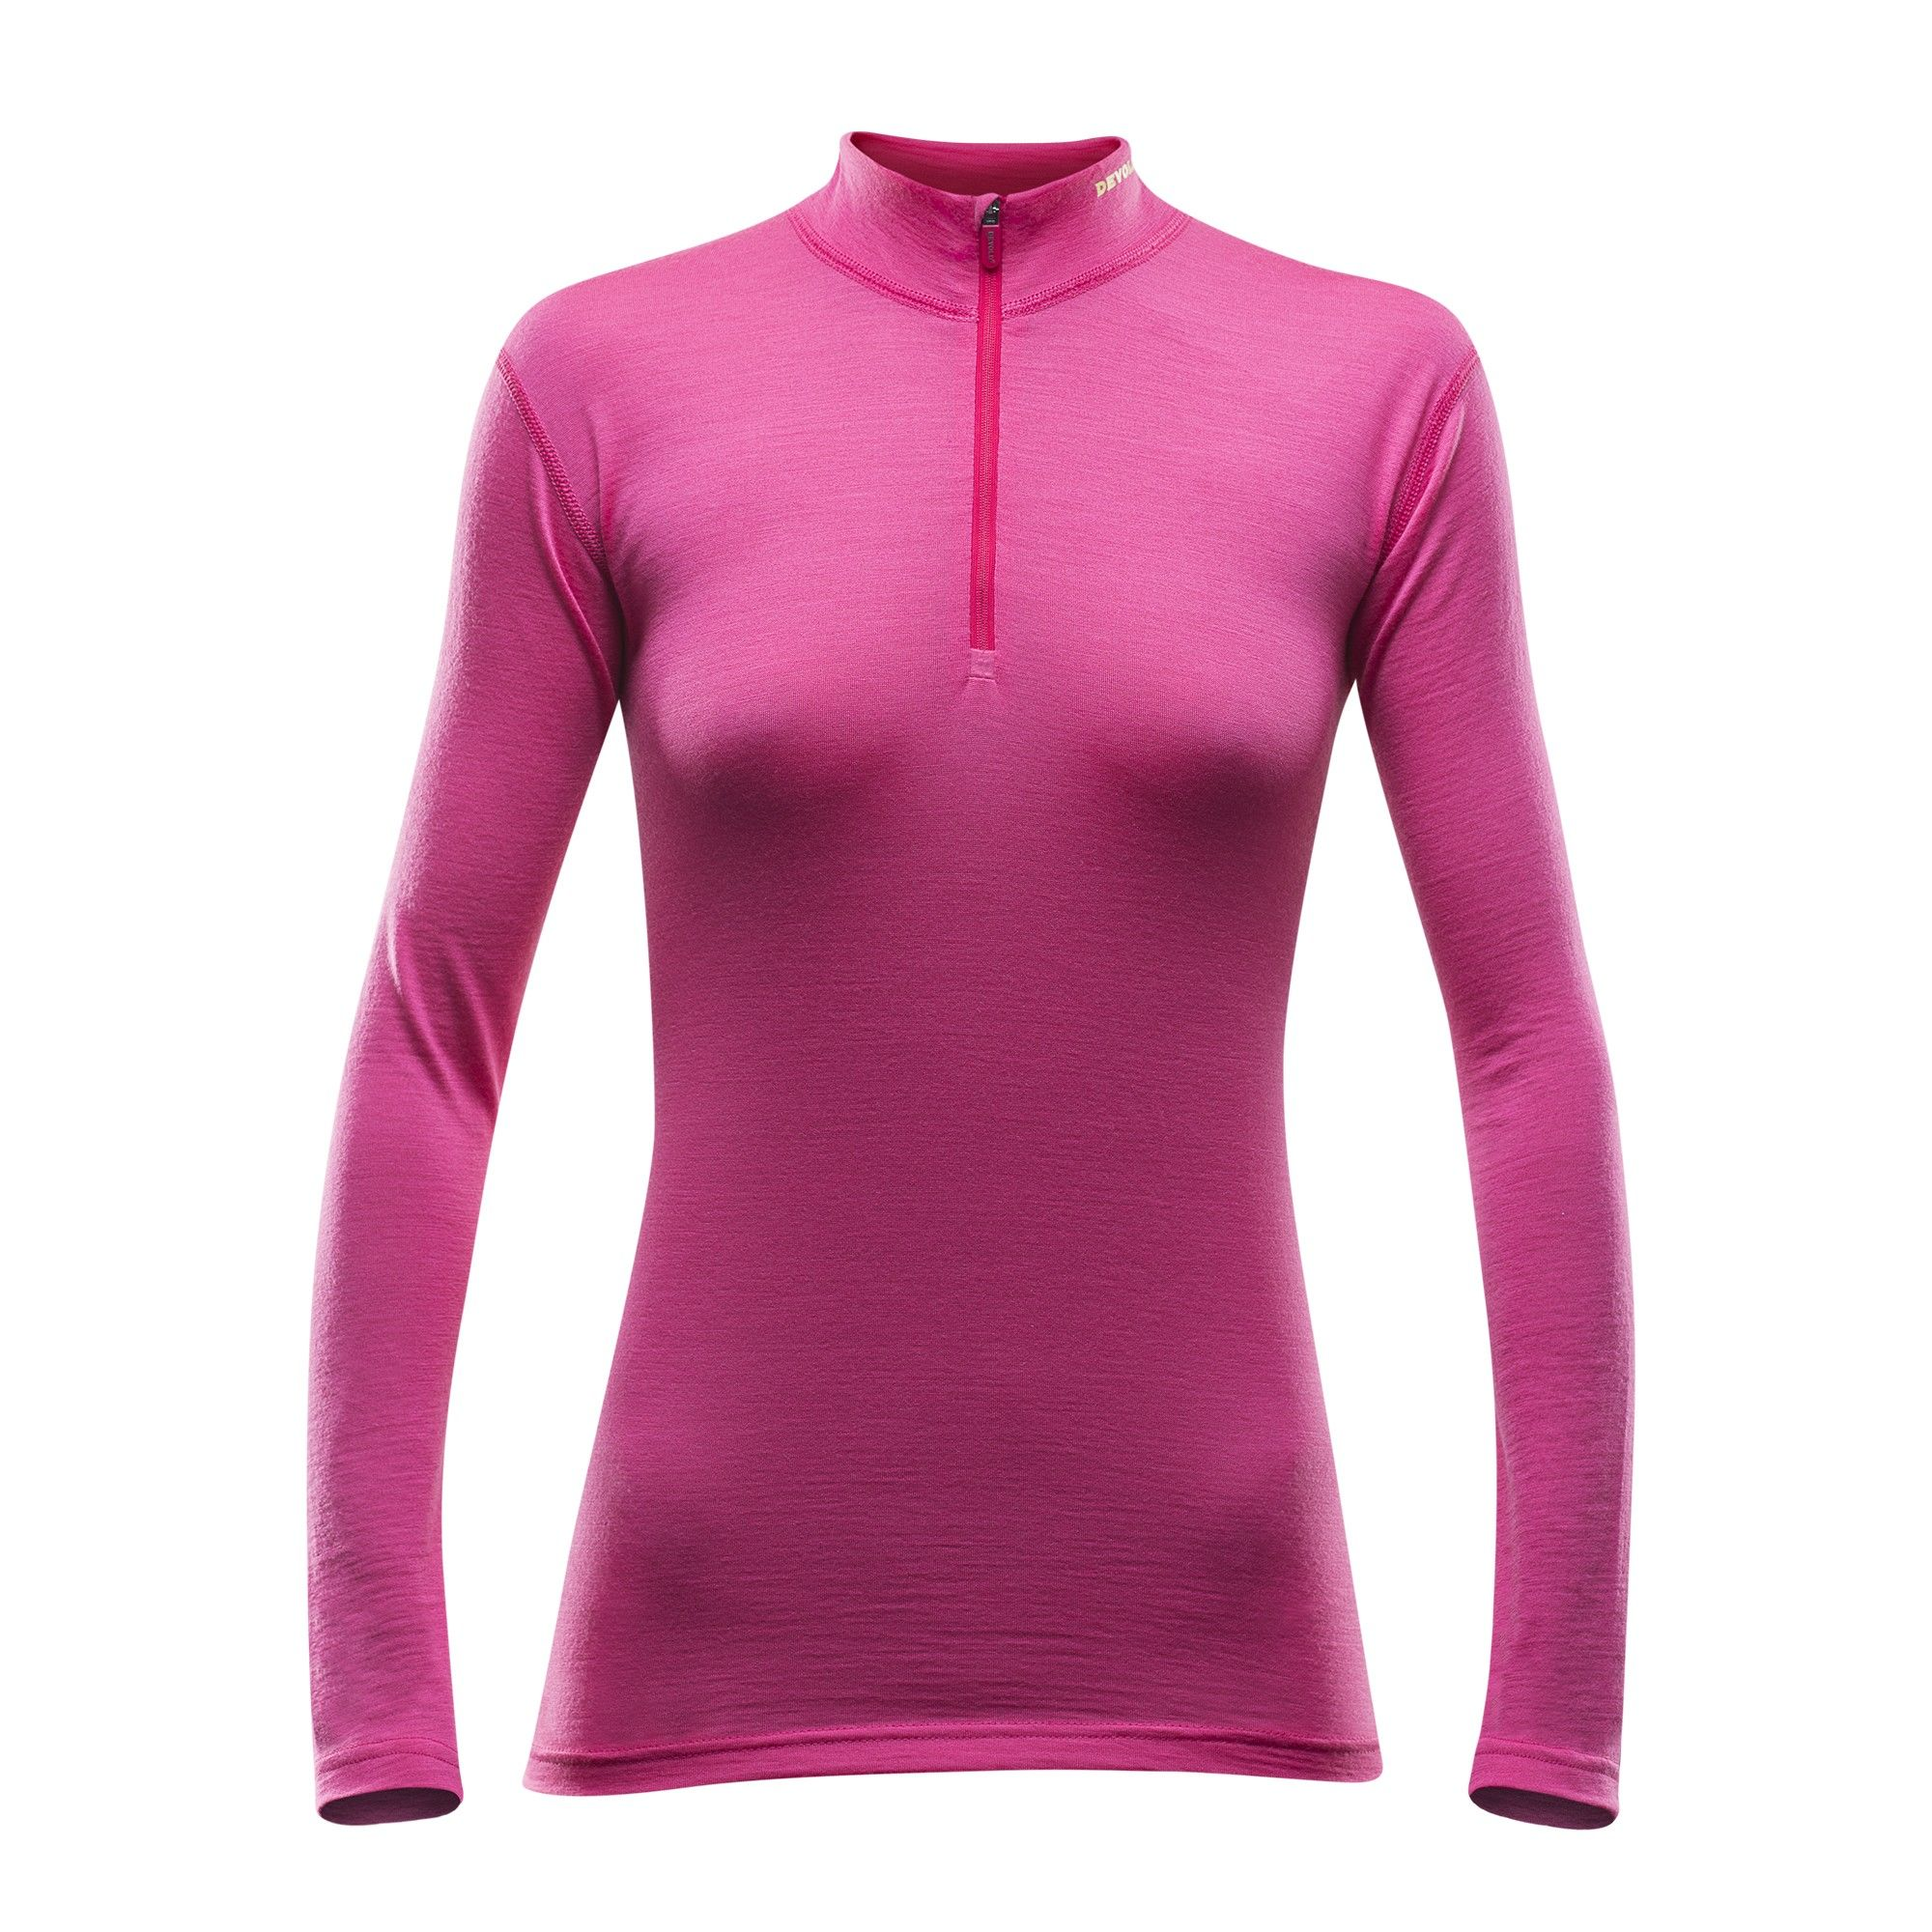 Devold Breeze Woman Half Zip Neck Pink, Female Merino Oberteil, L